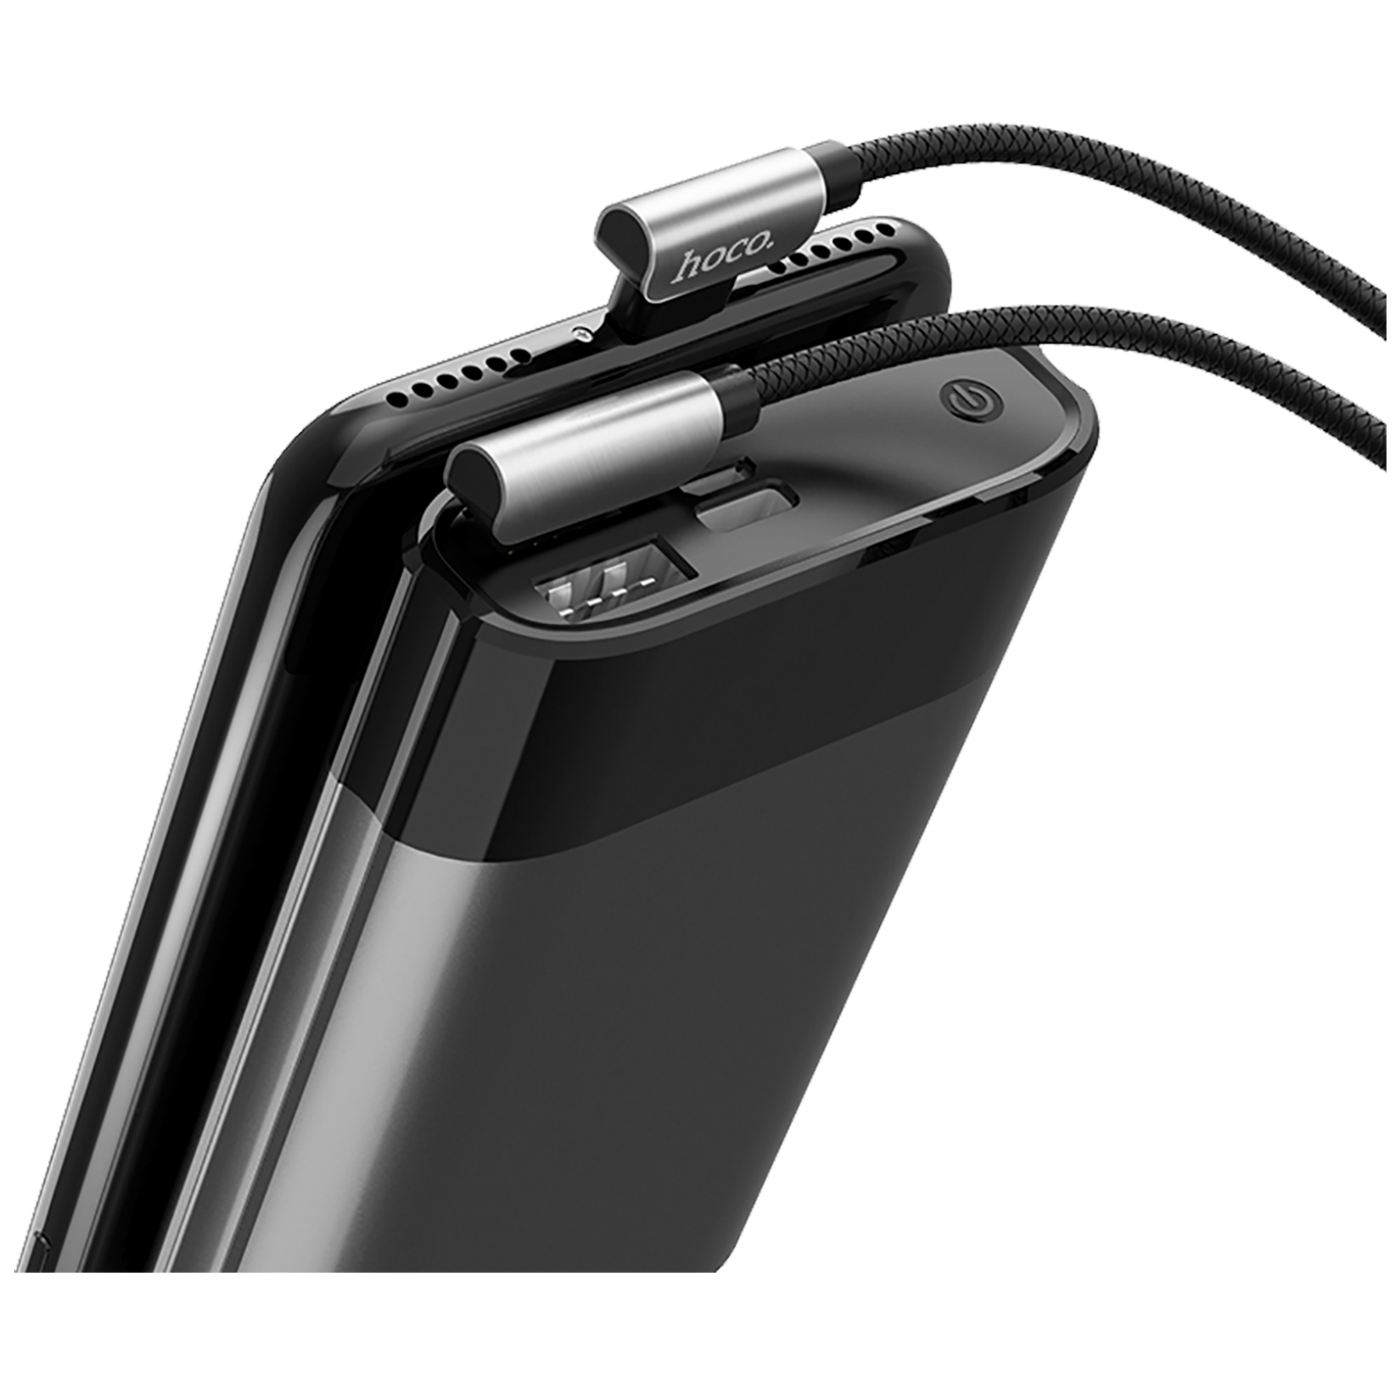 U42 Exquisite steel, USB type C, BK